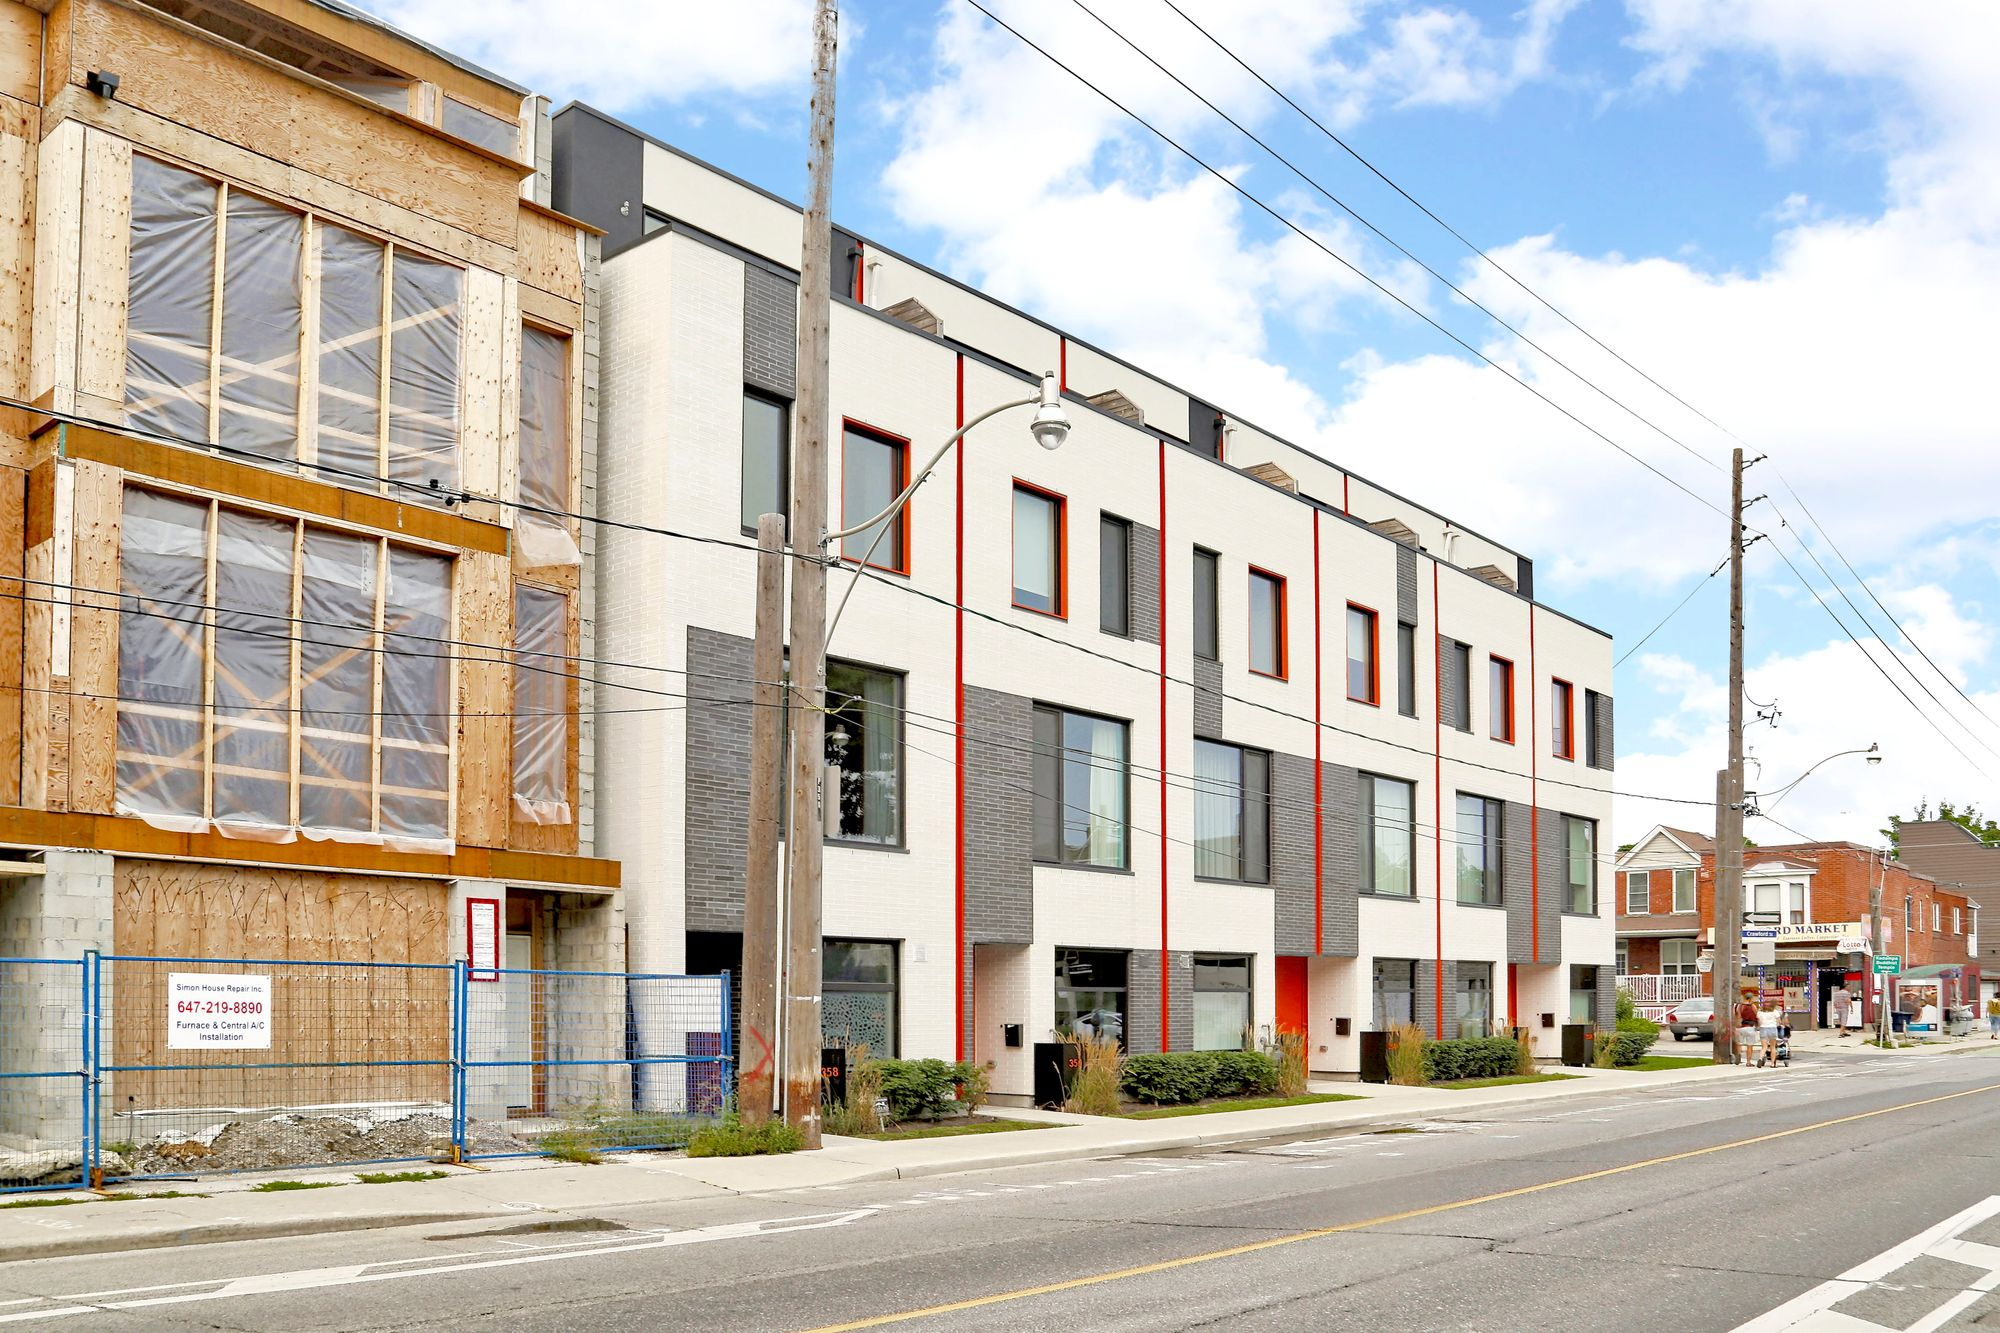 Oben Flats Harbord Towns at 352-358 Harbord St. This condo townhouse is located in  West End, Toronto - image #2 of 5 by Strata.ca